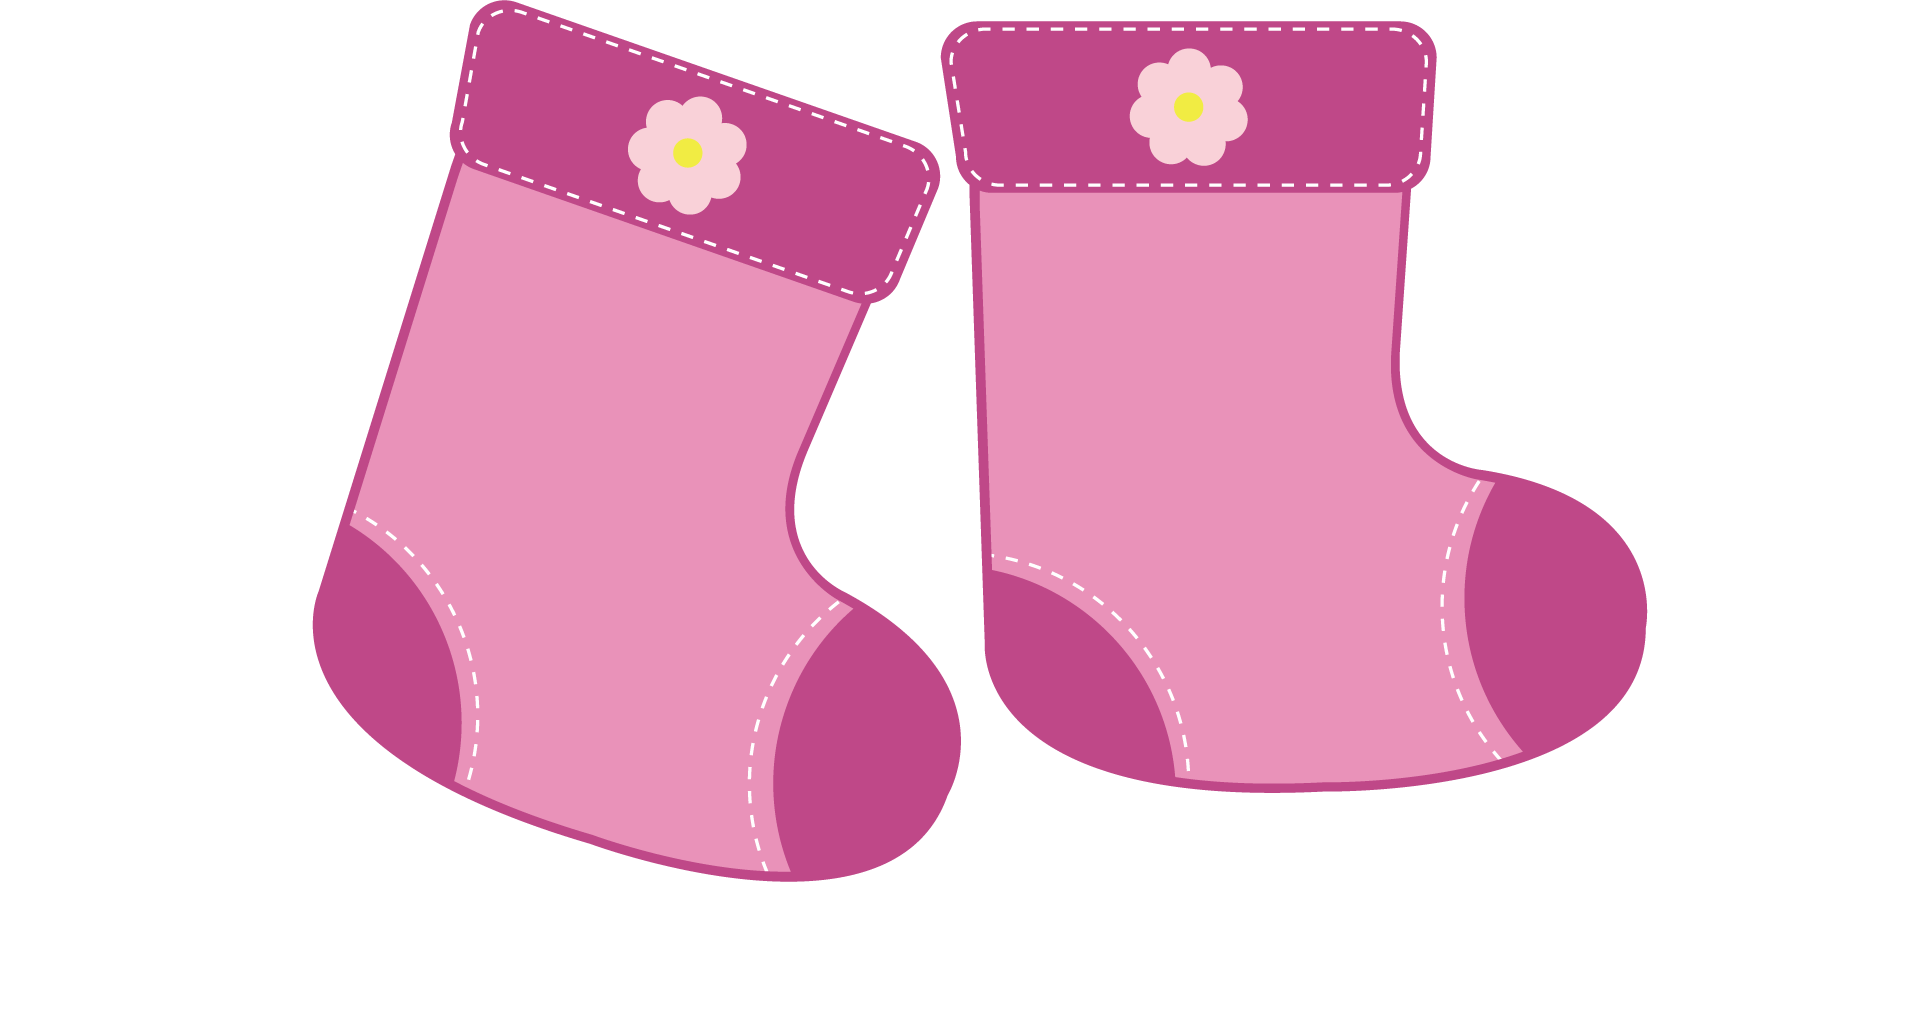 Clipart socks lady. Sock pink hosiery baby